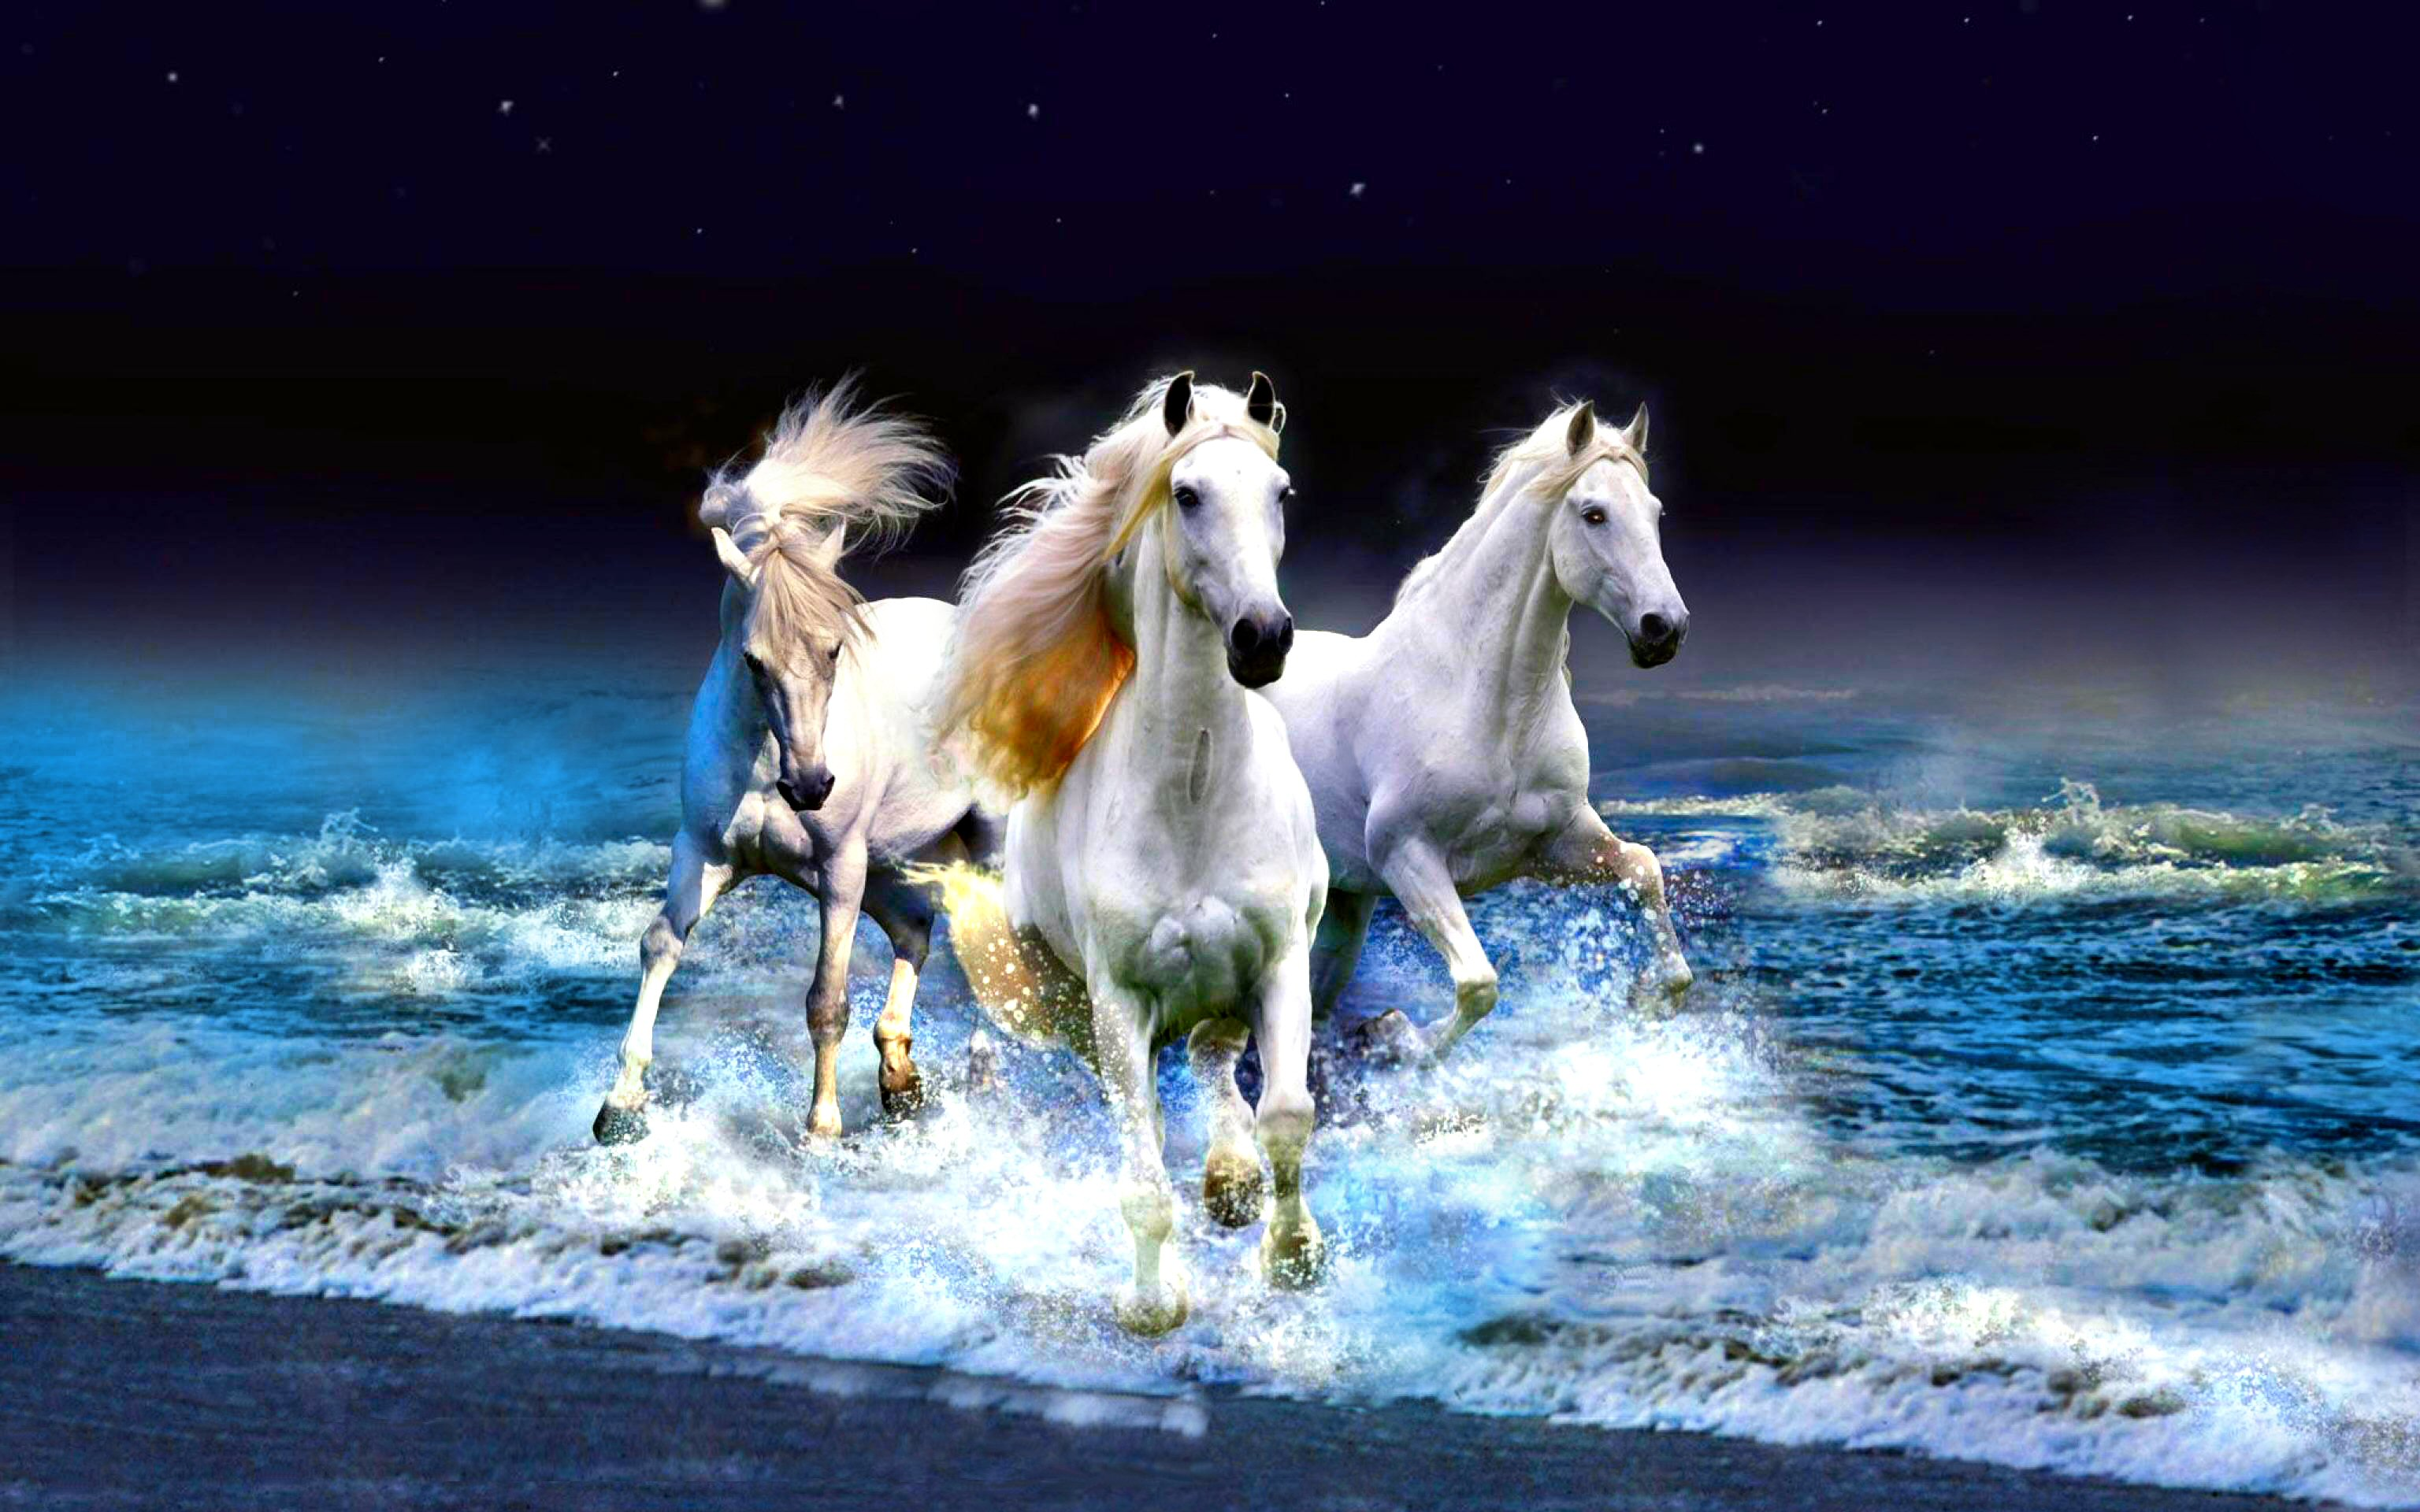 964 horse hd wallpapers   background images - wallpaper abyss